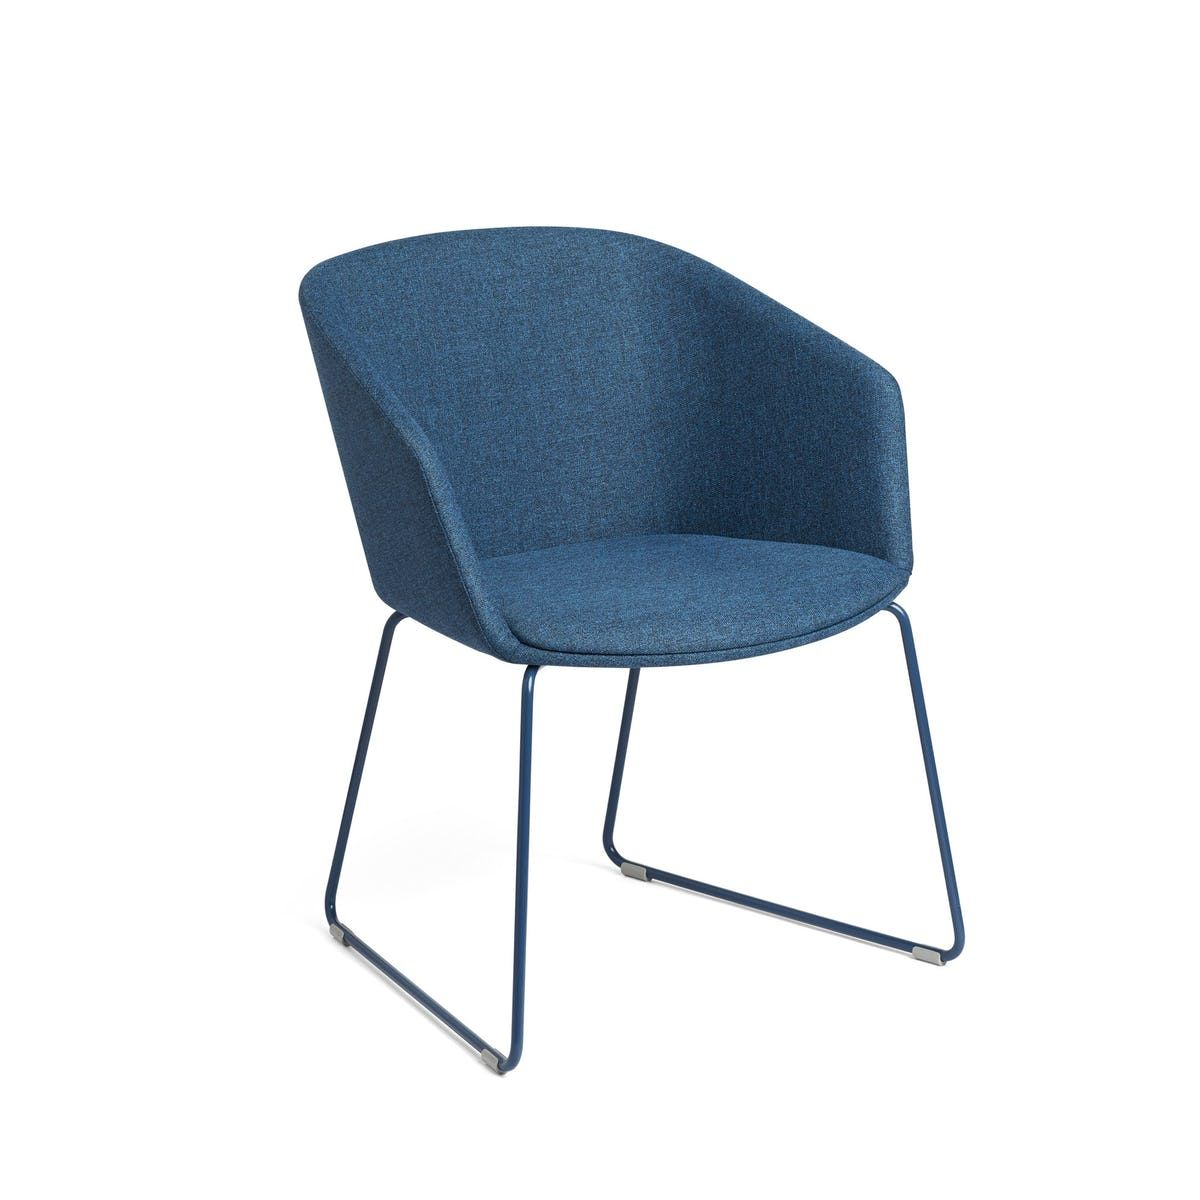 Dark Blue Pitch Sled Chair Office Chairs Office Furniture